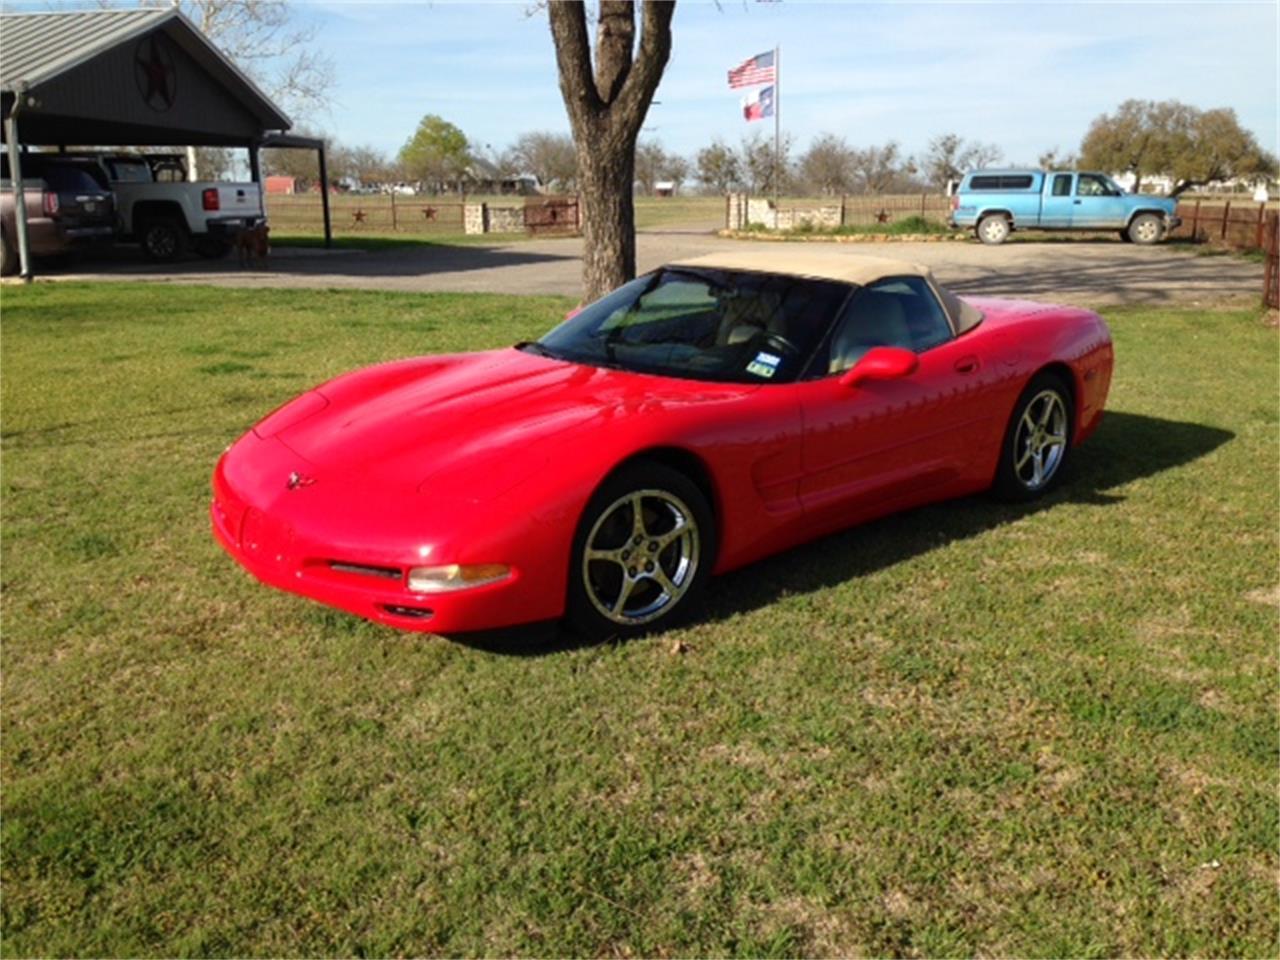 Large Picture of 2000 Corvette located in Hamilton Texas - $16,950.00 Offered by a Private Seller - GPTJ